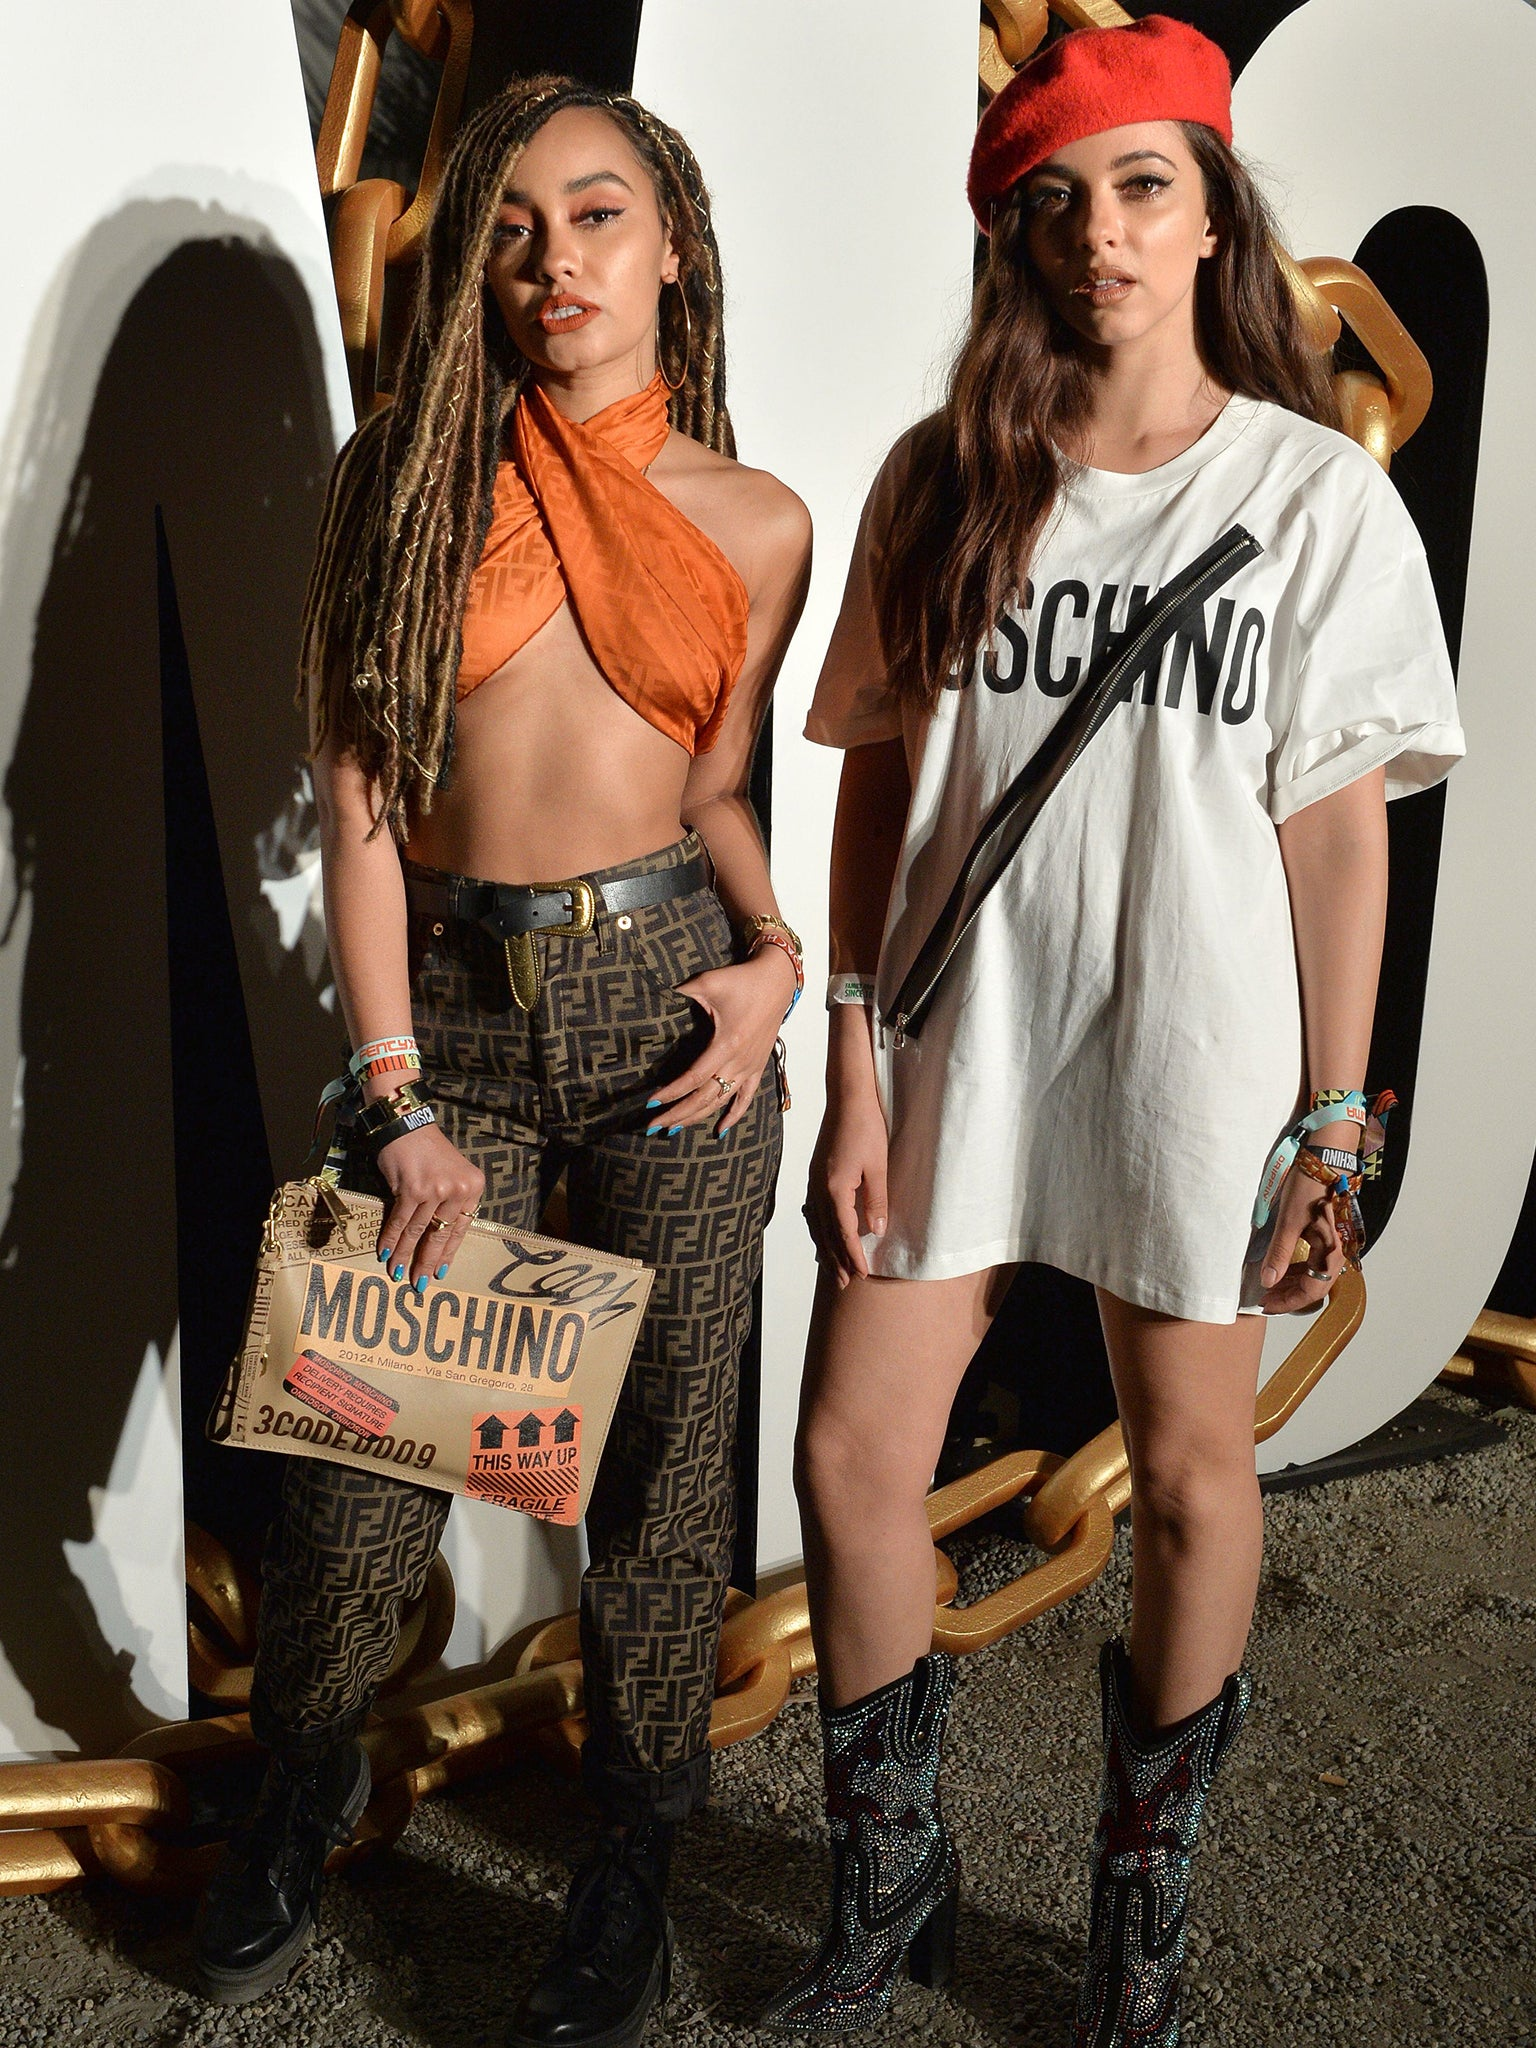 Festival fashion: The six cliché looks you won't be able to